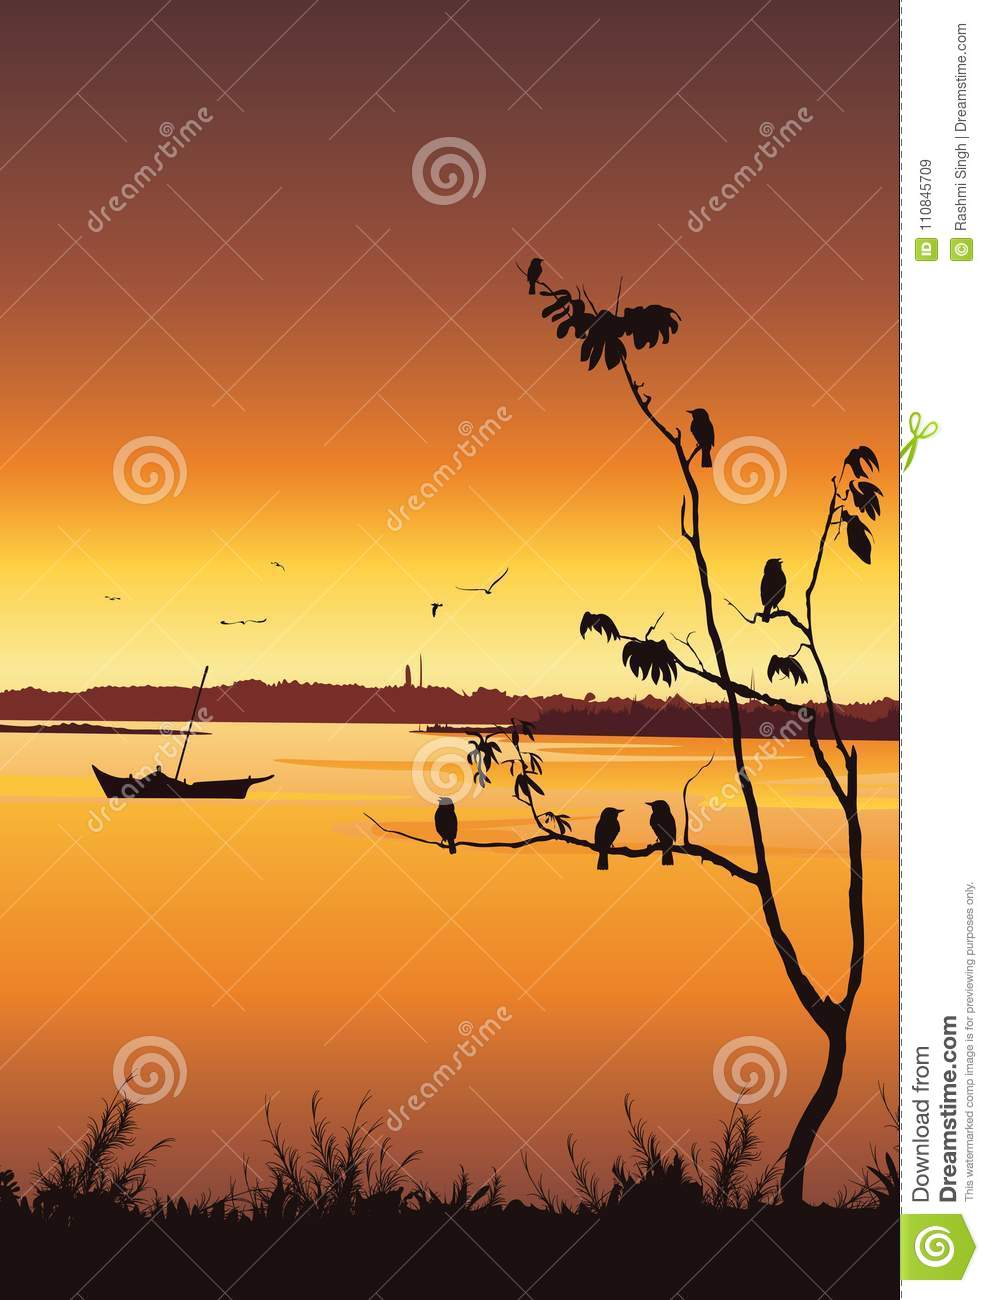 nature background with river and tree. birds sitting on tree